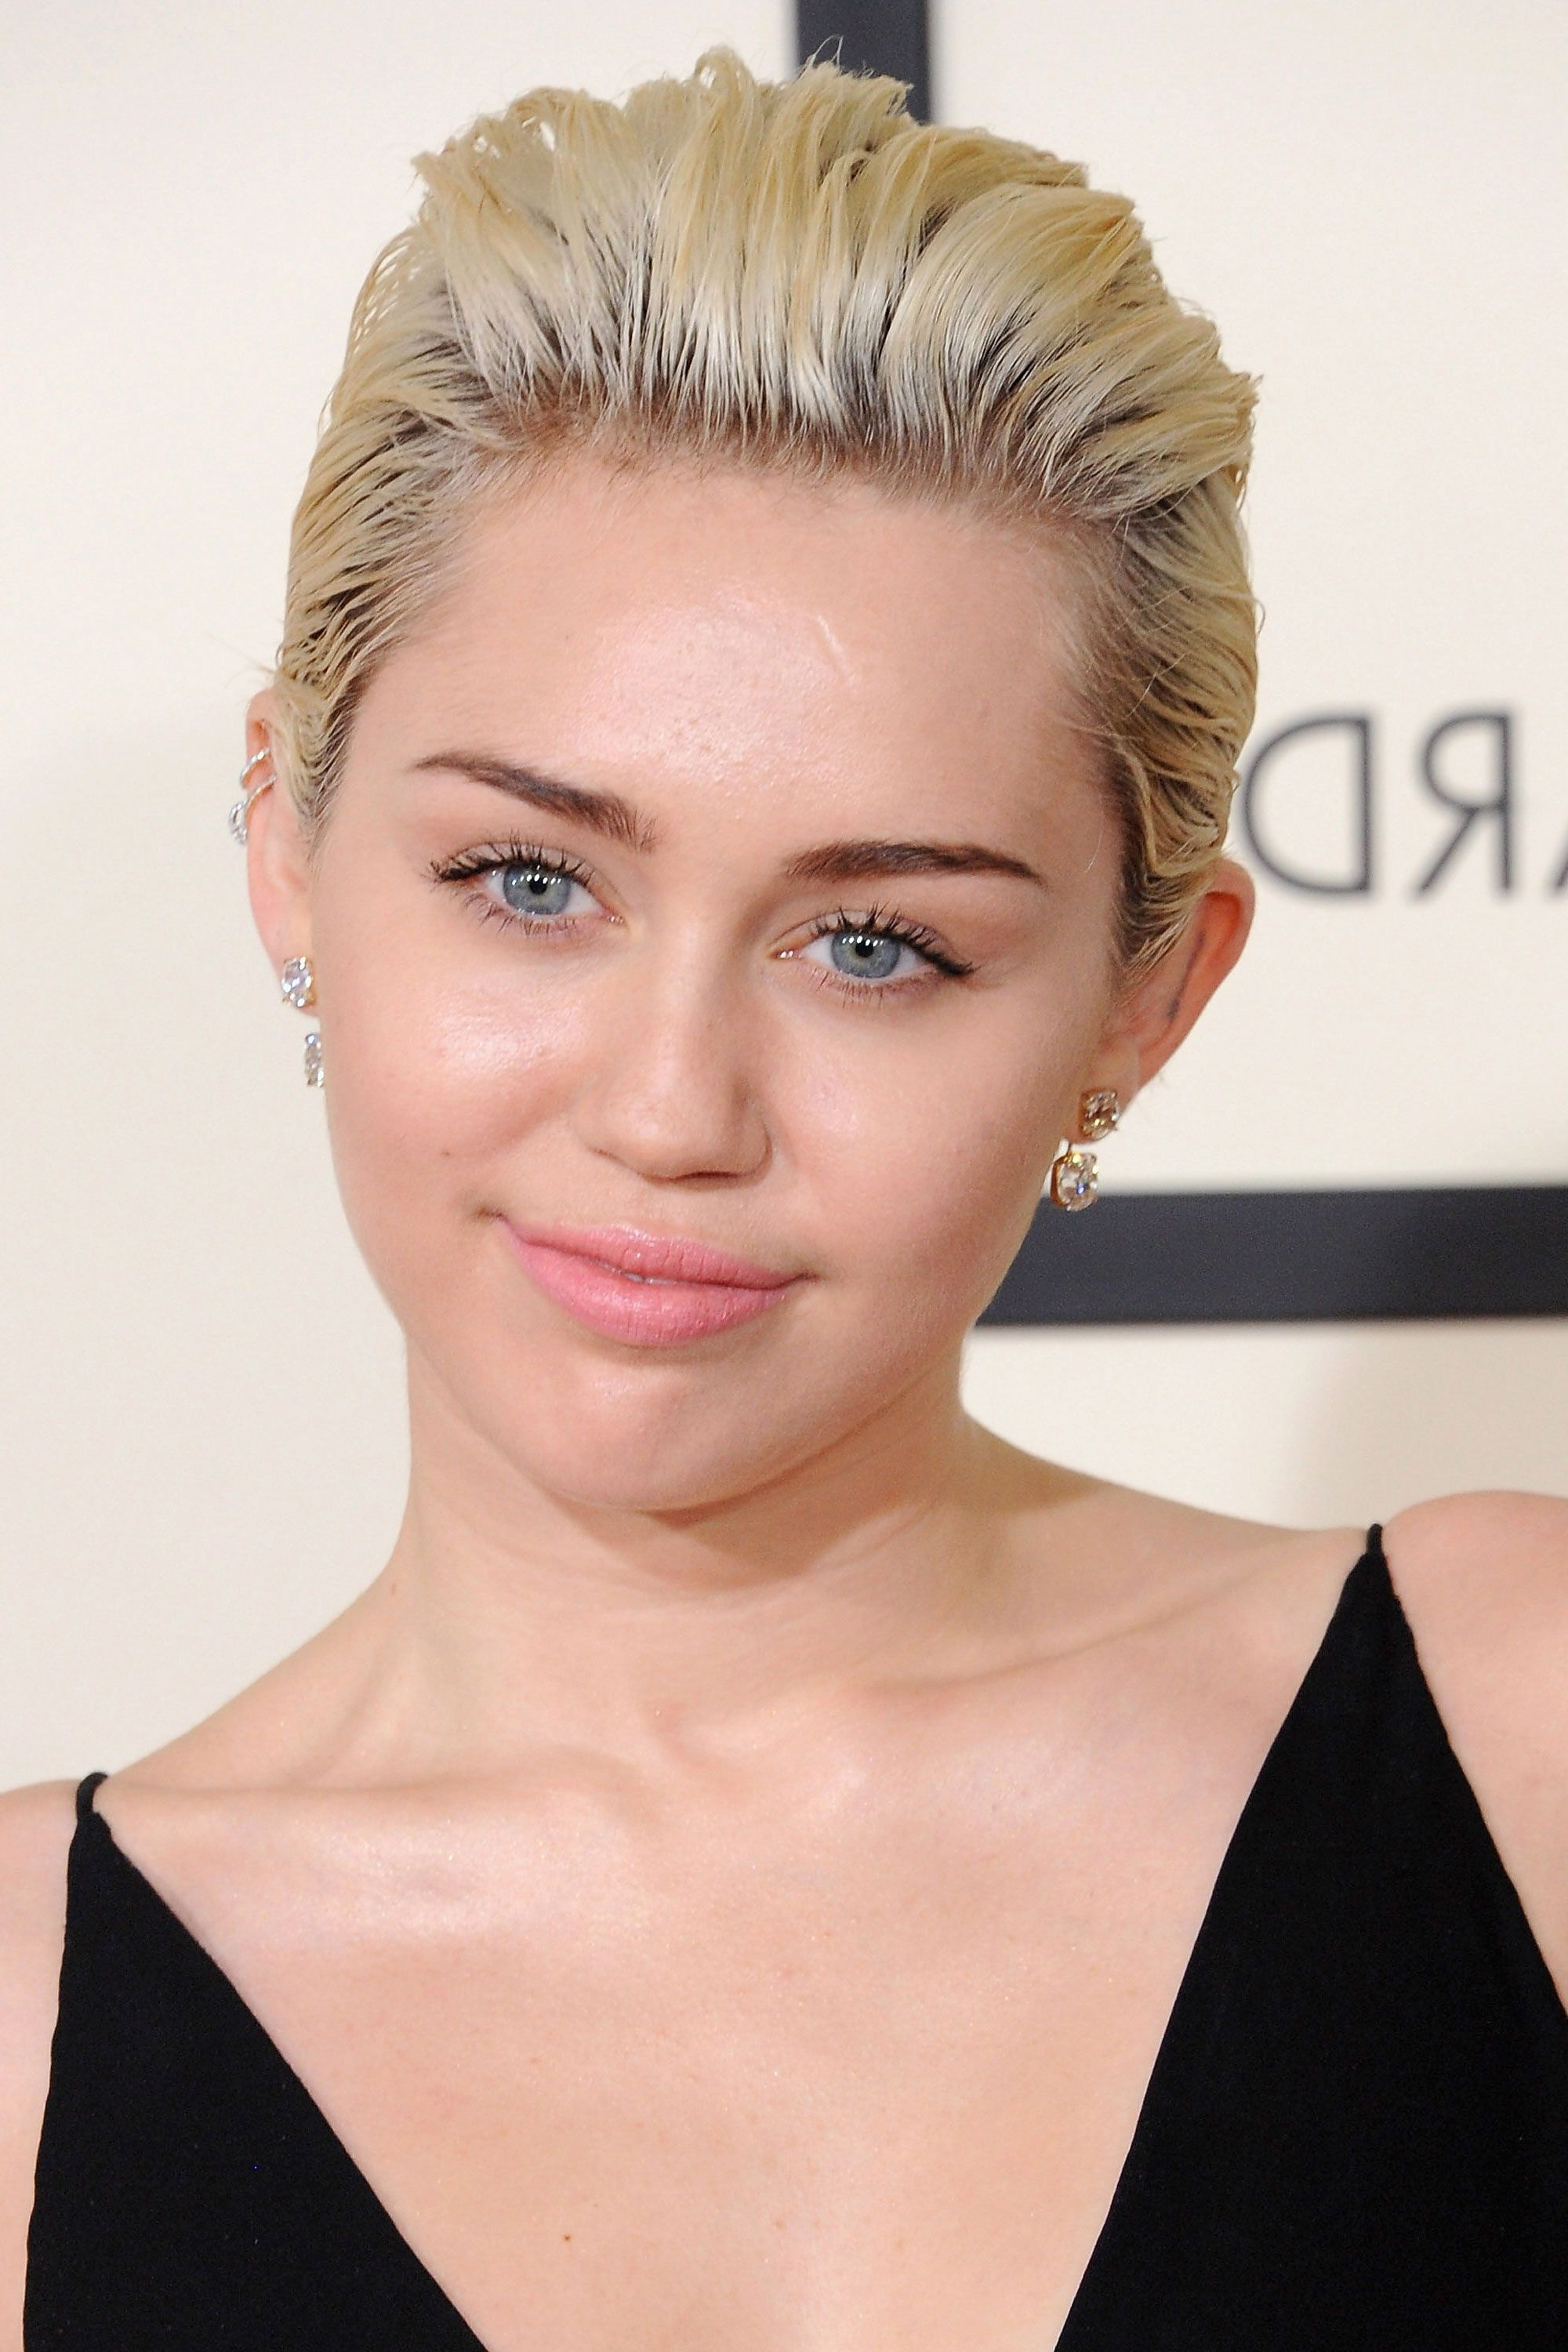 87 Cute Short Hairstyles & Haircuts – How To Style Short Hair In Miley Cyrus Short Hairstyles (View 11 of 25)